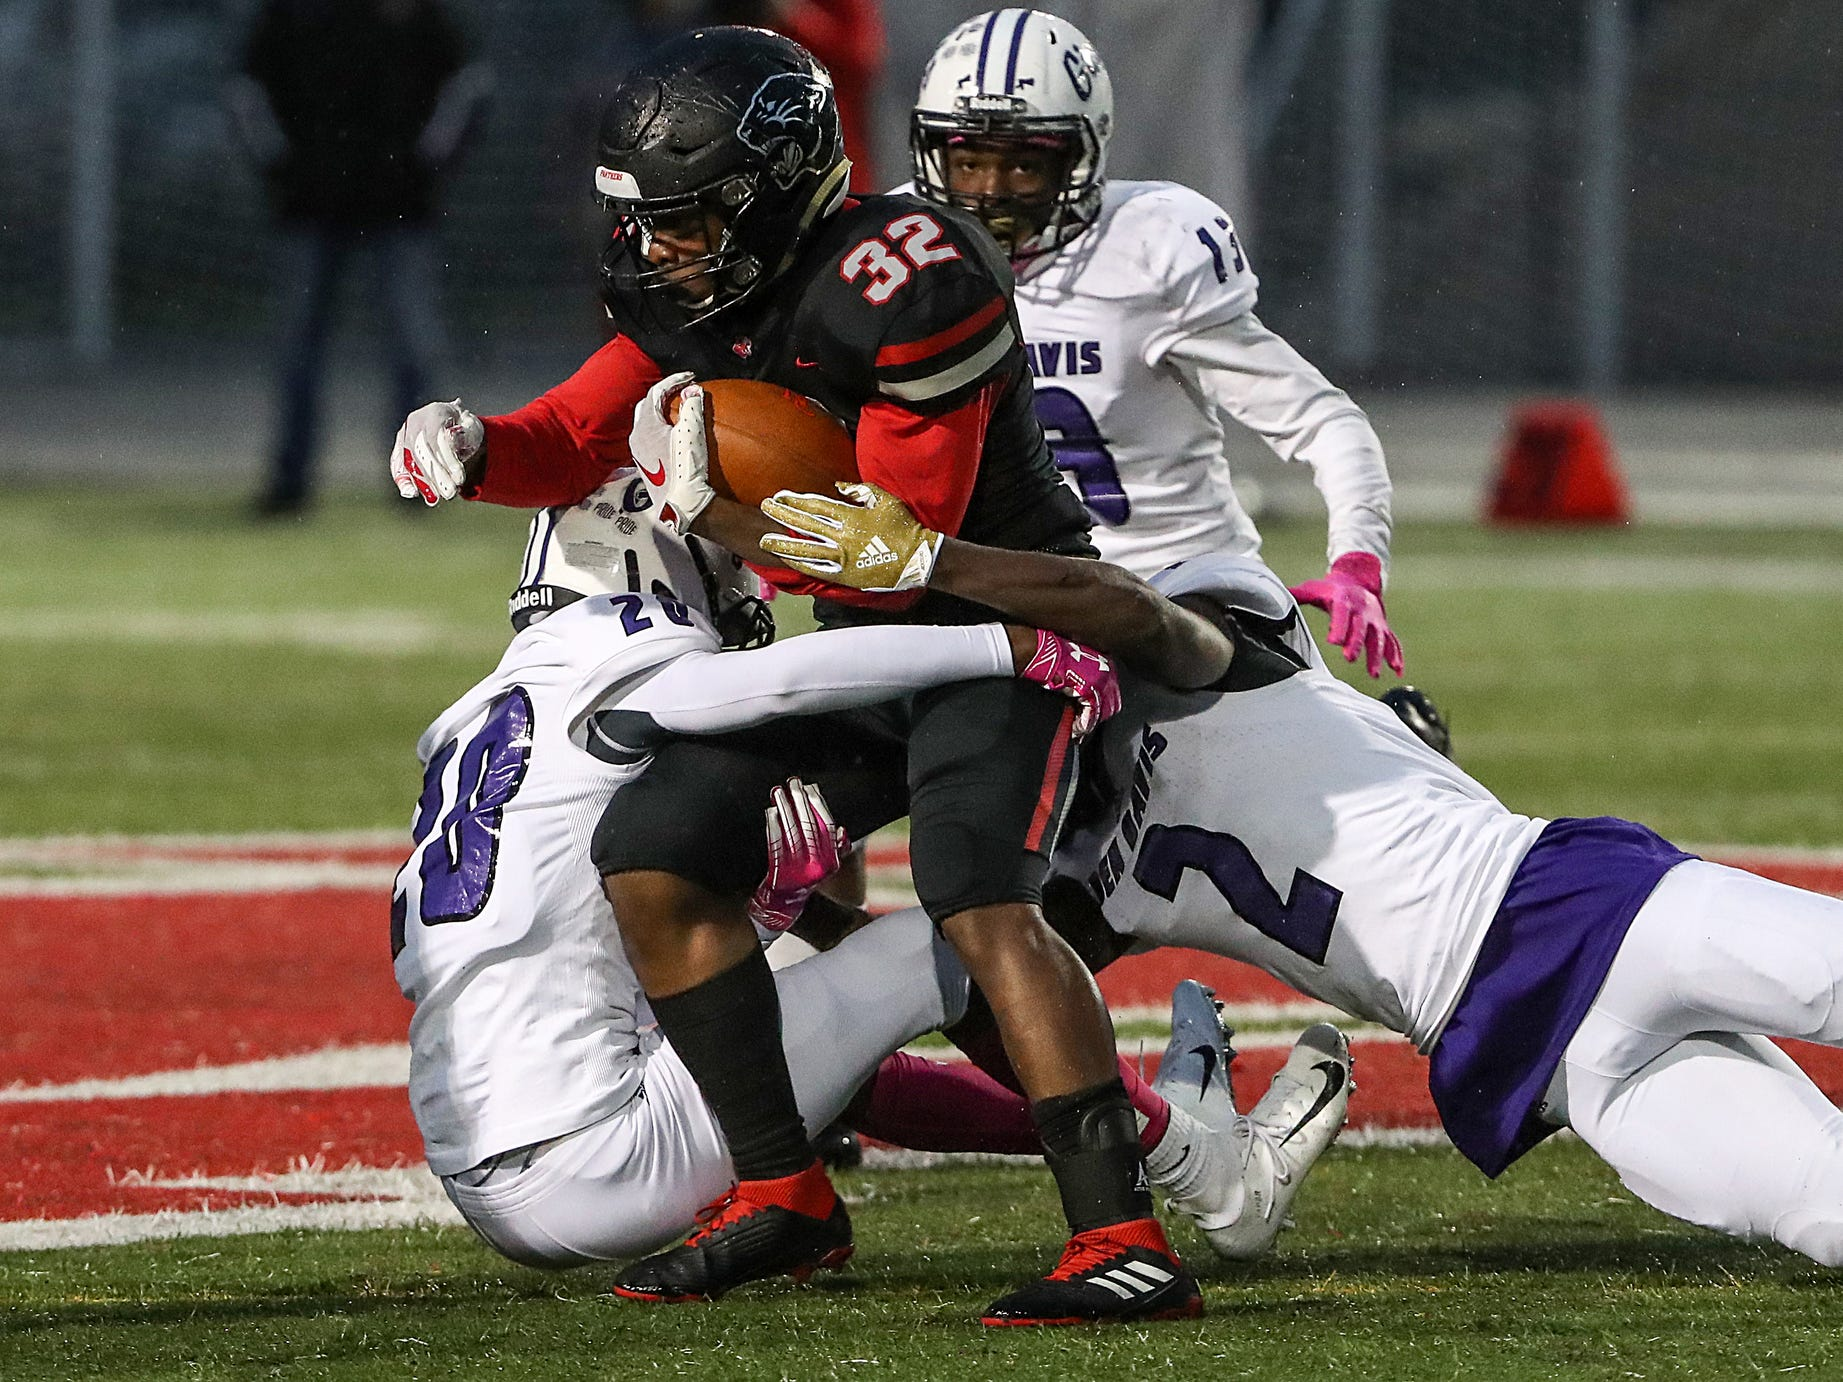 Ben Davis Giants Chris Peters (28) and Michael Adams (2) tackle North Central Panthers running back Alexander Tarver (32) in the first half of the game at North Central High School in Indianapolis, Oct. 12, 2018.